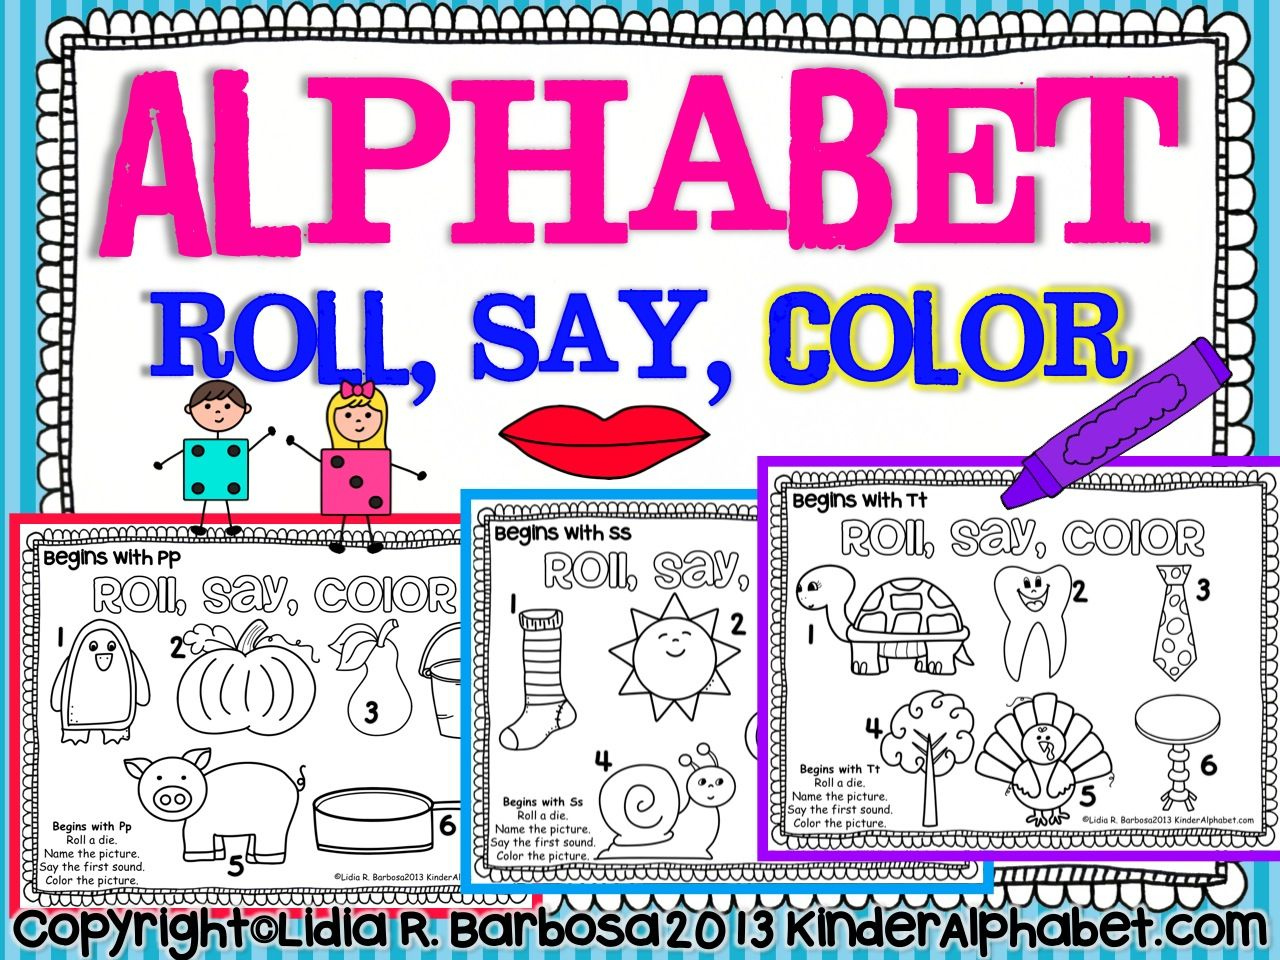 Alphabet Roll, Say, Color a HandsOn game to learn sounds